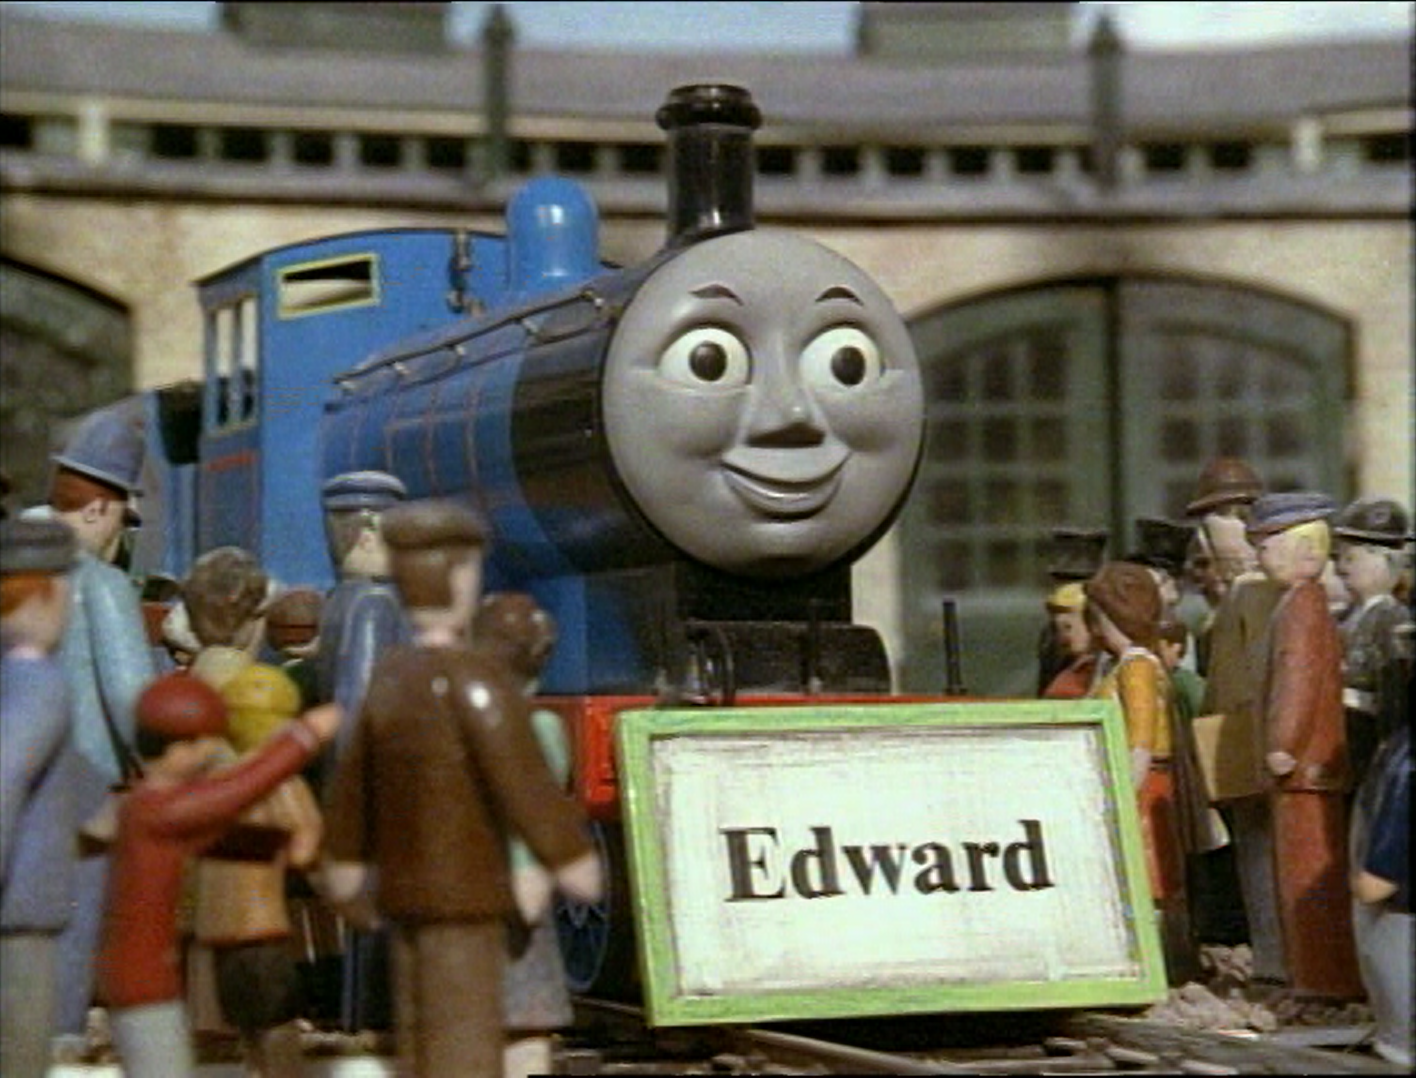 File:Edwardwithnameboard.png